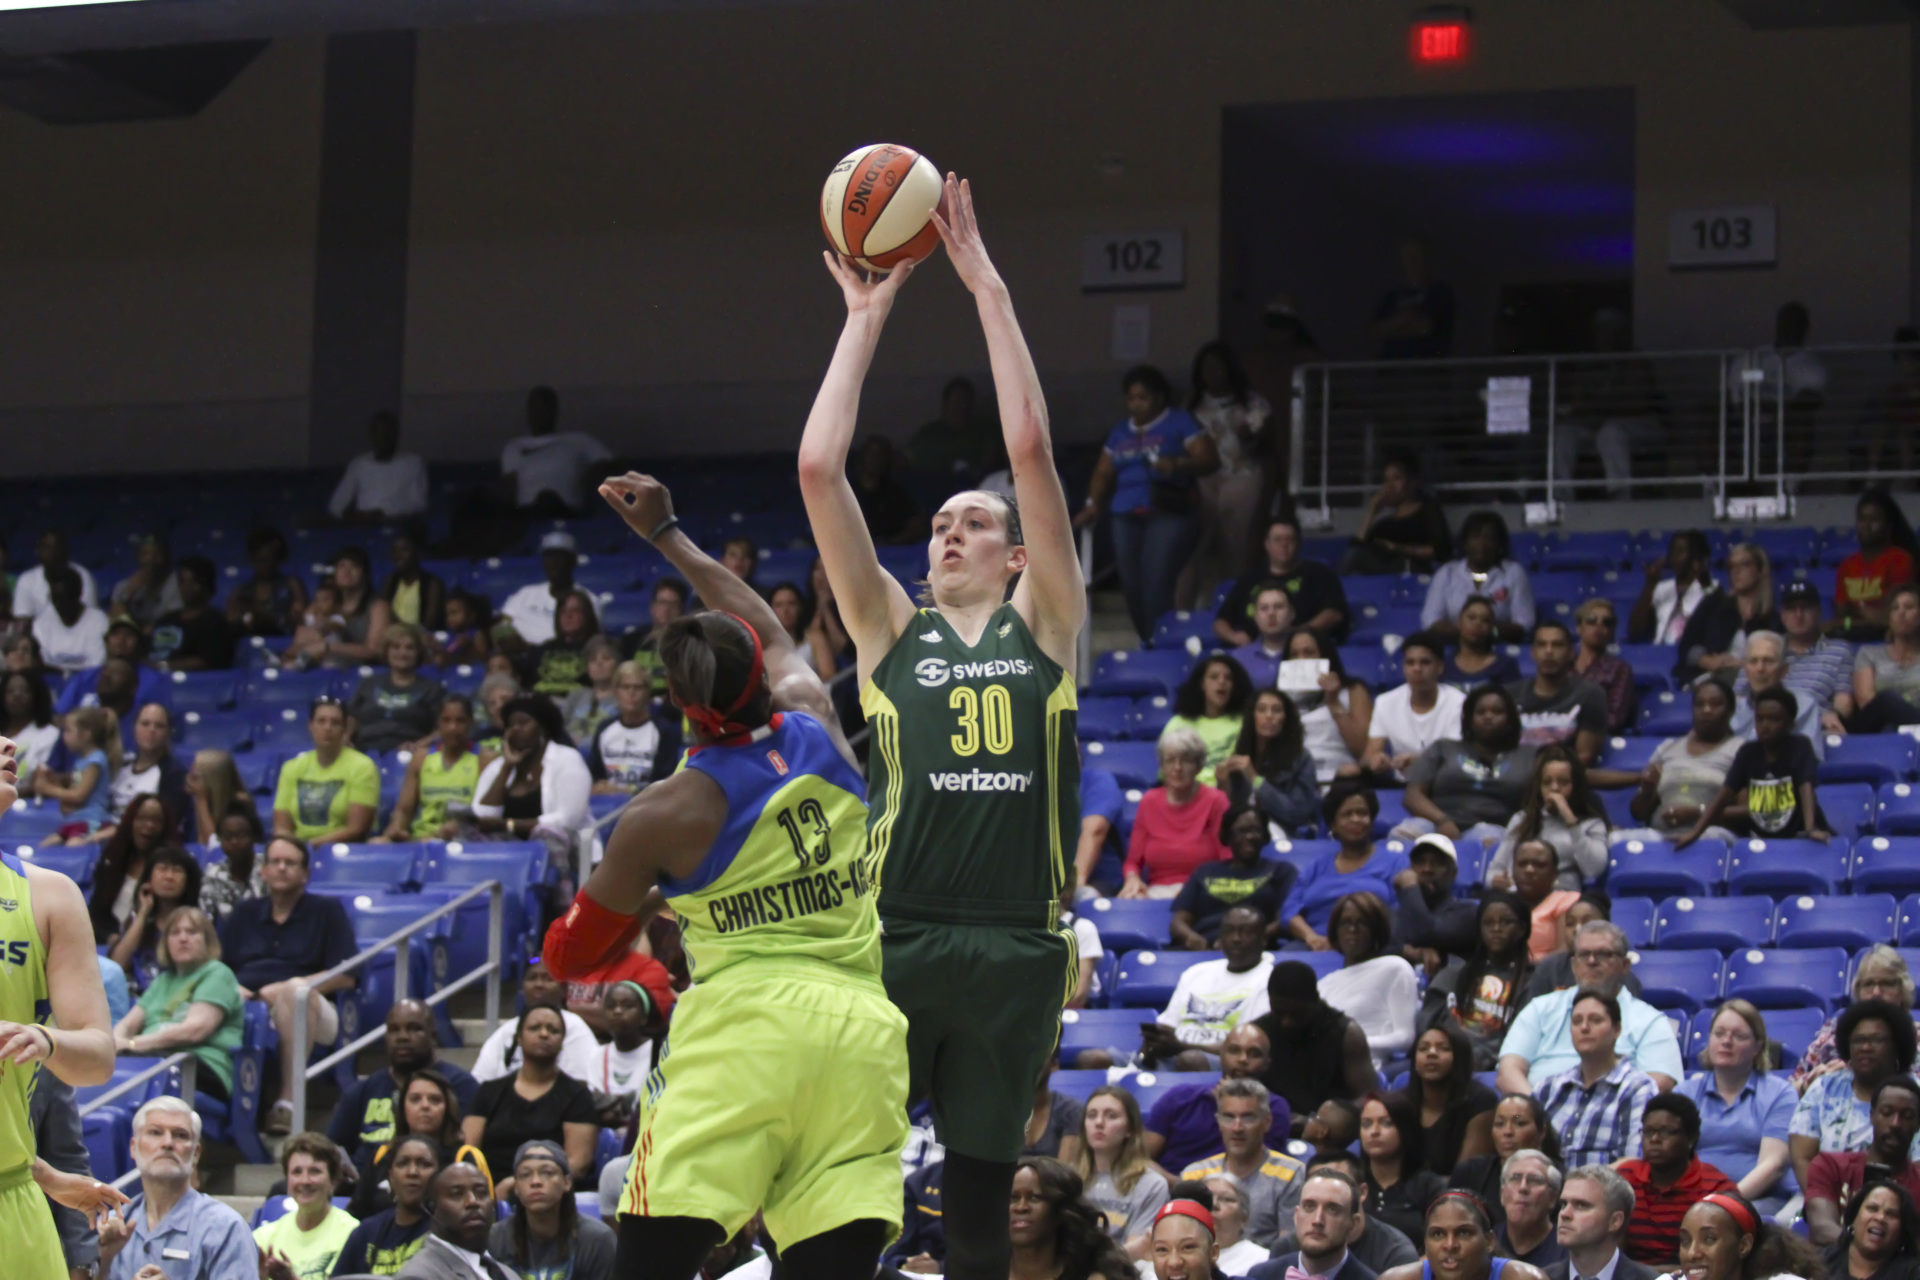 August 4, 2017 - Arlington, TX - Seattle Storm's Breanna Stewart (30) shoots the ball in the game between the Dallas Wings and Seattle Storm. (Anthony Mazur/AM News Net)